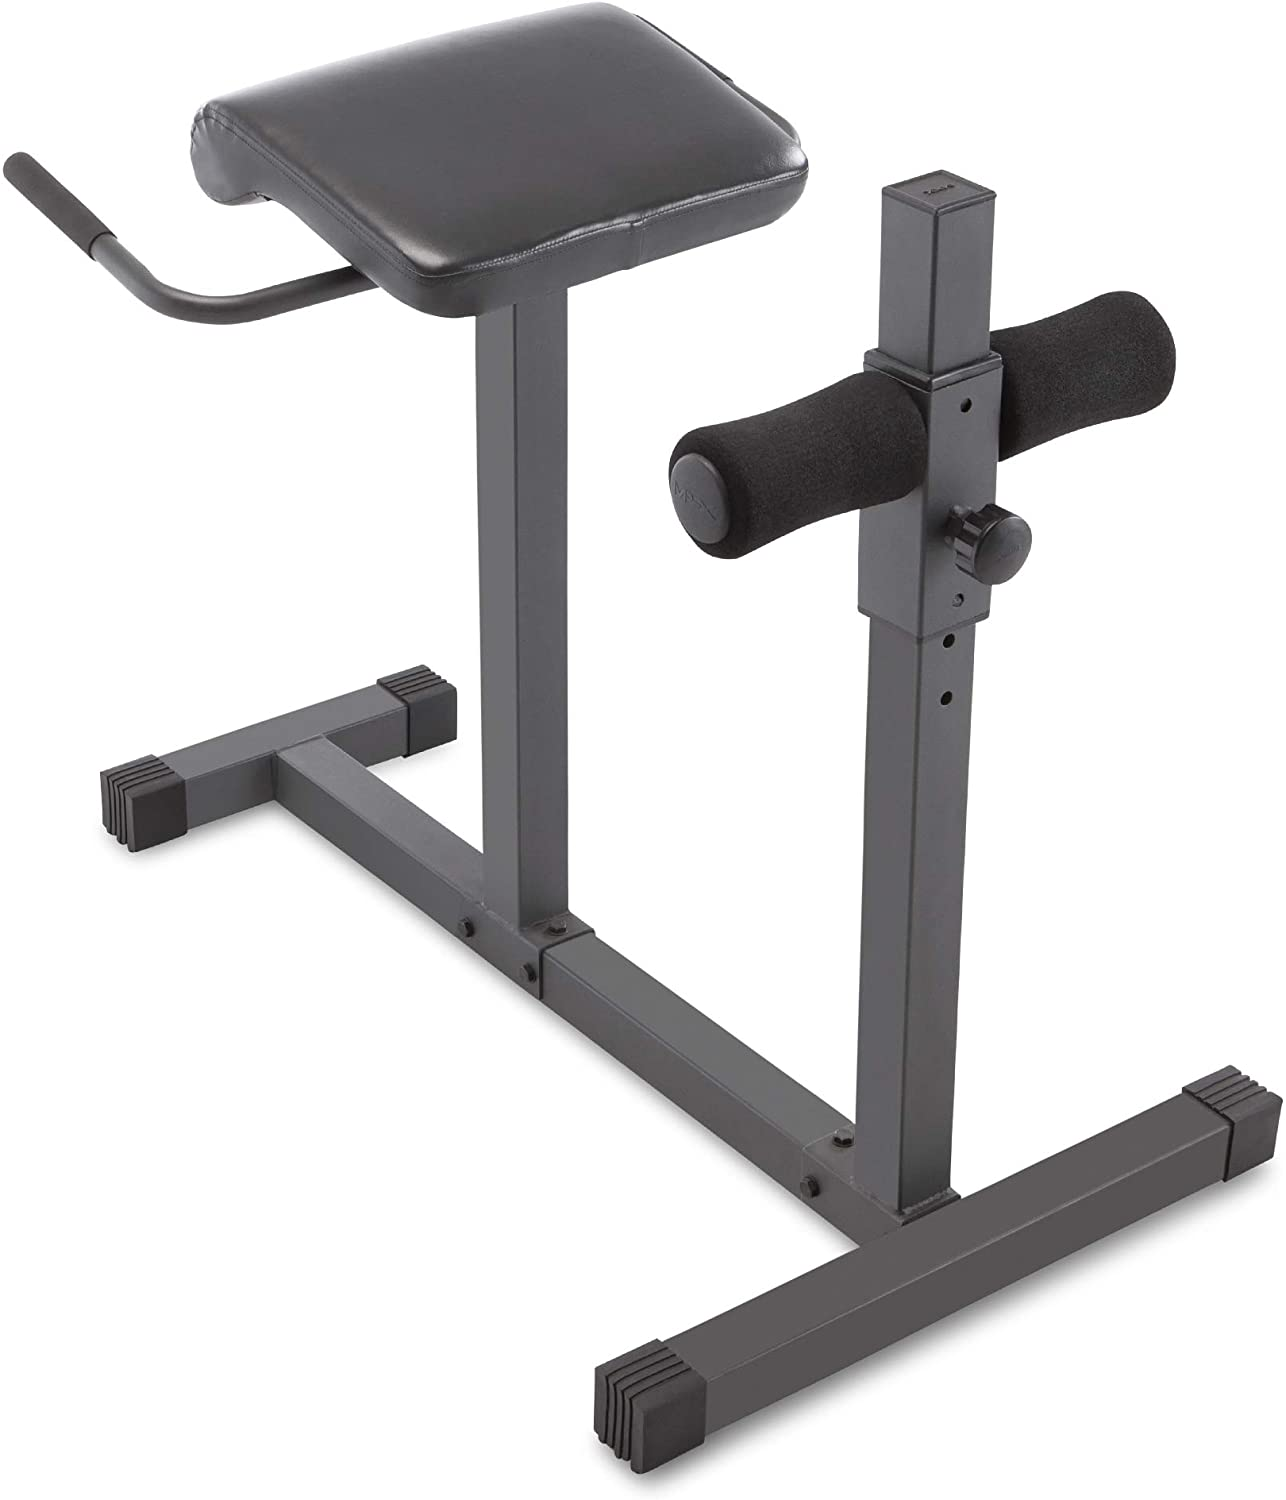 Marcy Adjustable Hyperextension Roman Chair Exercise Bench